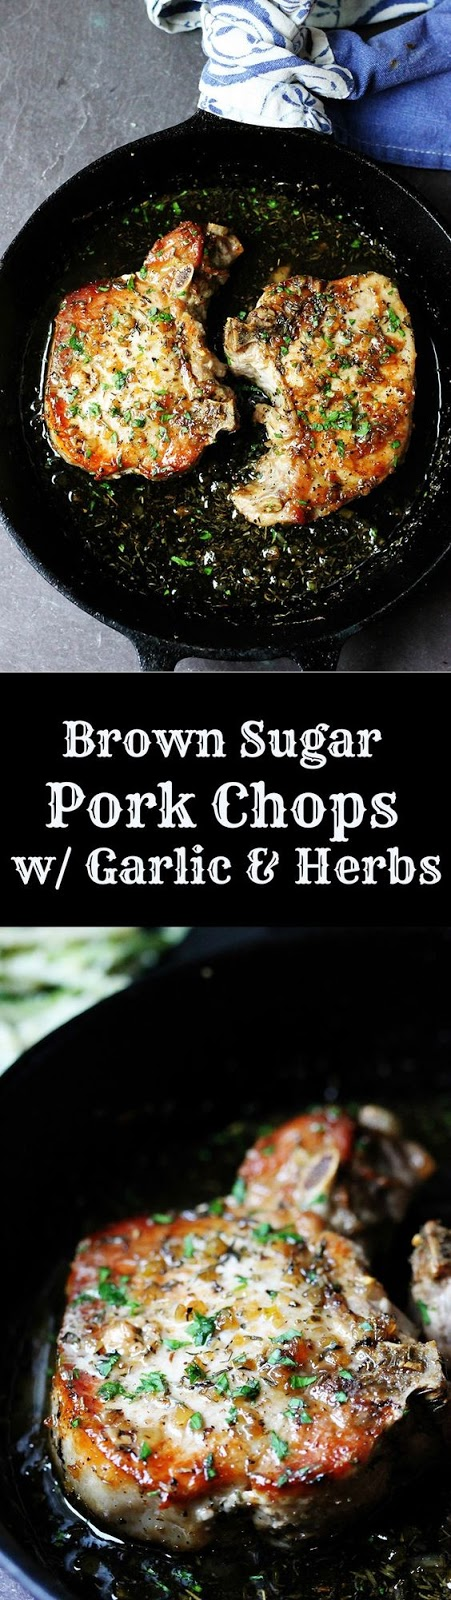 Brown Sugar Pork Chops With Garlic & Herbs